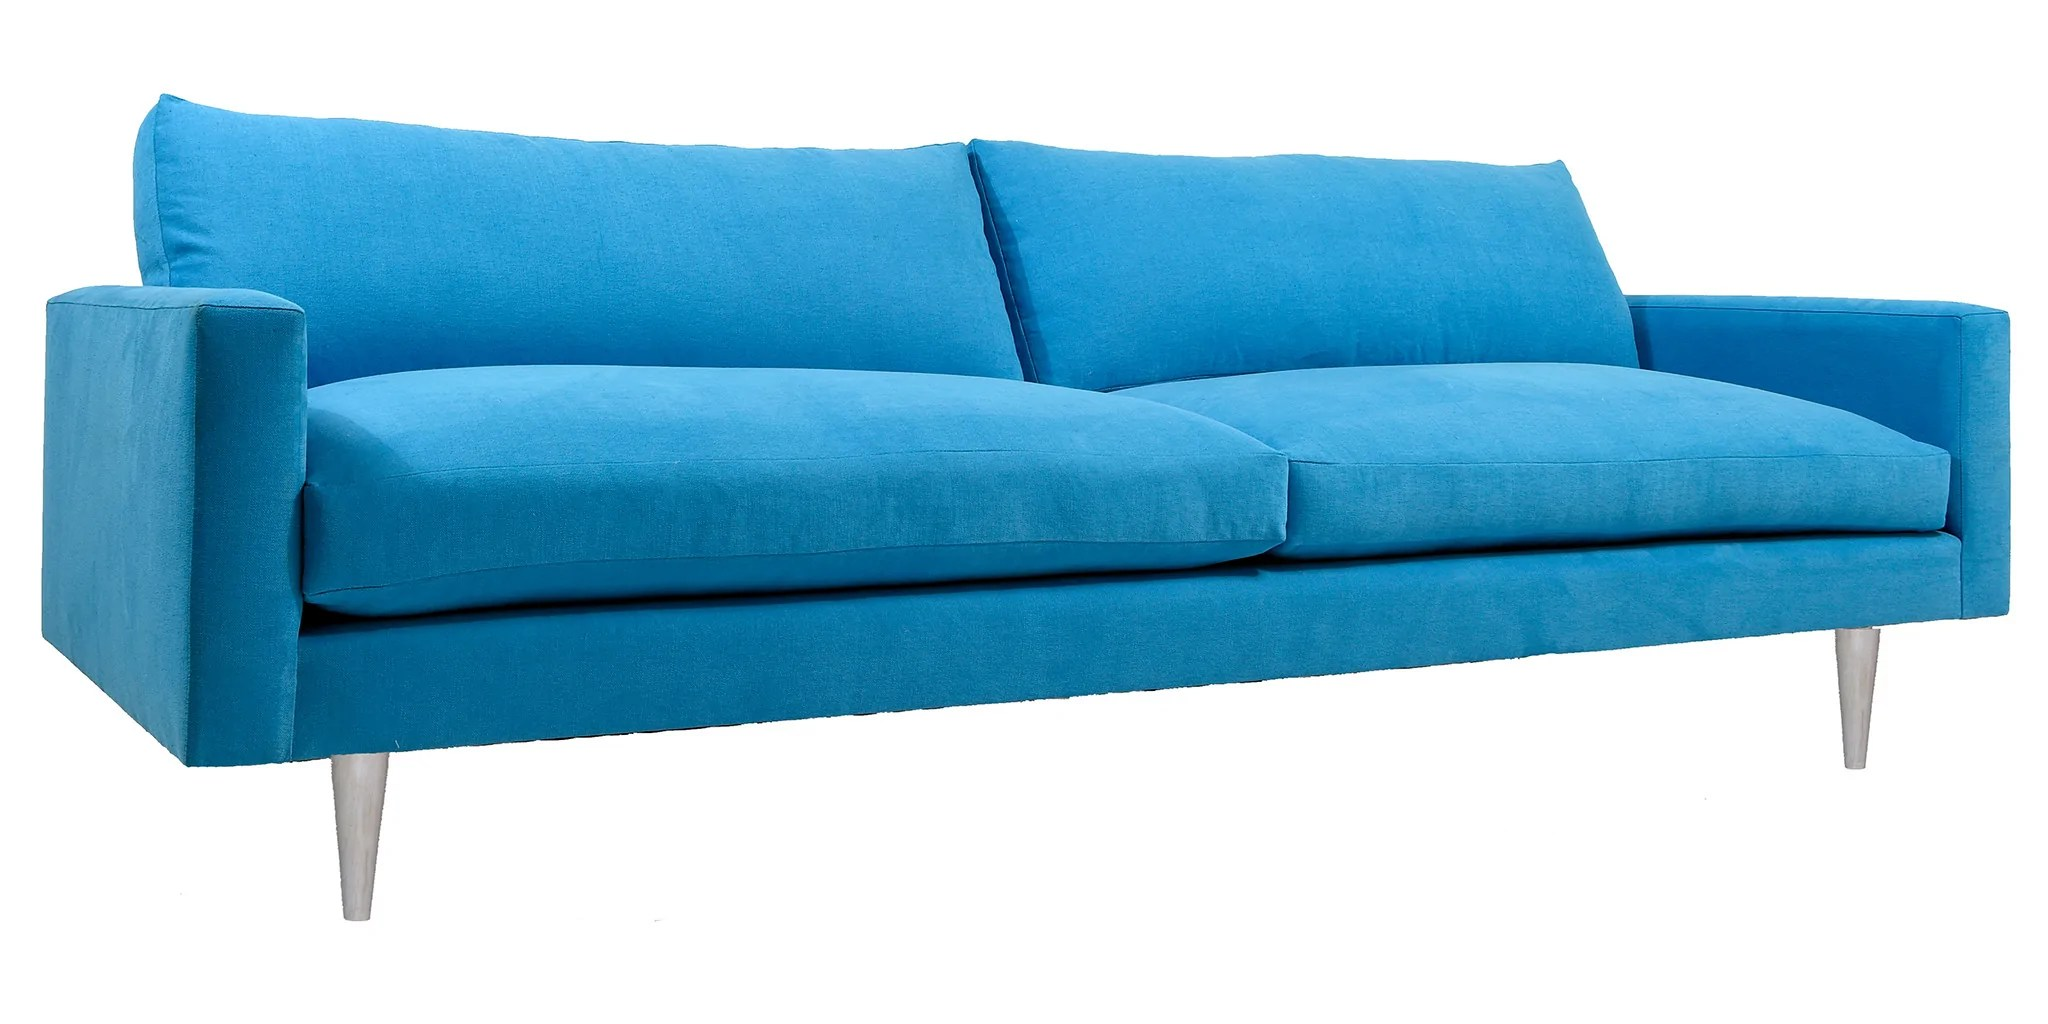 howell sofa best bed new york 28 images wingback